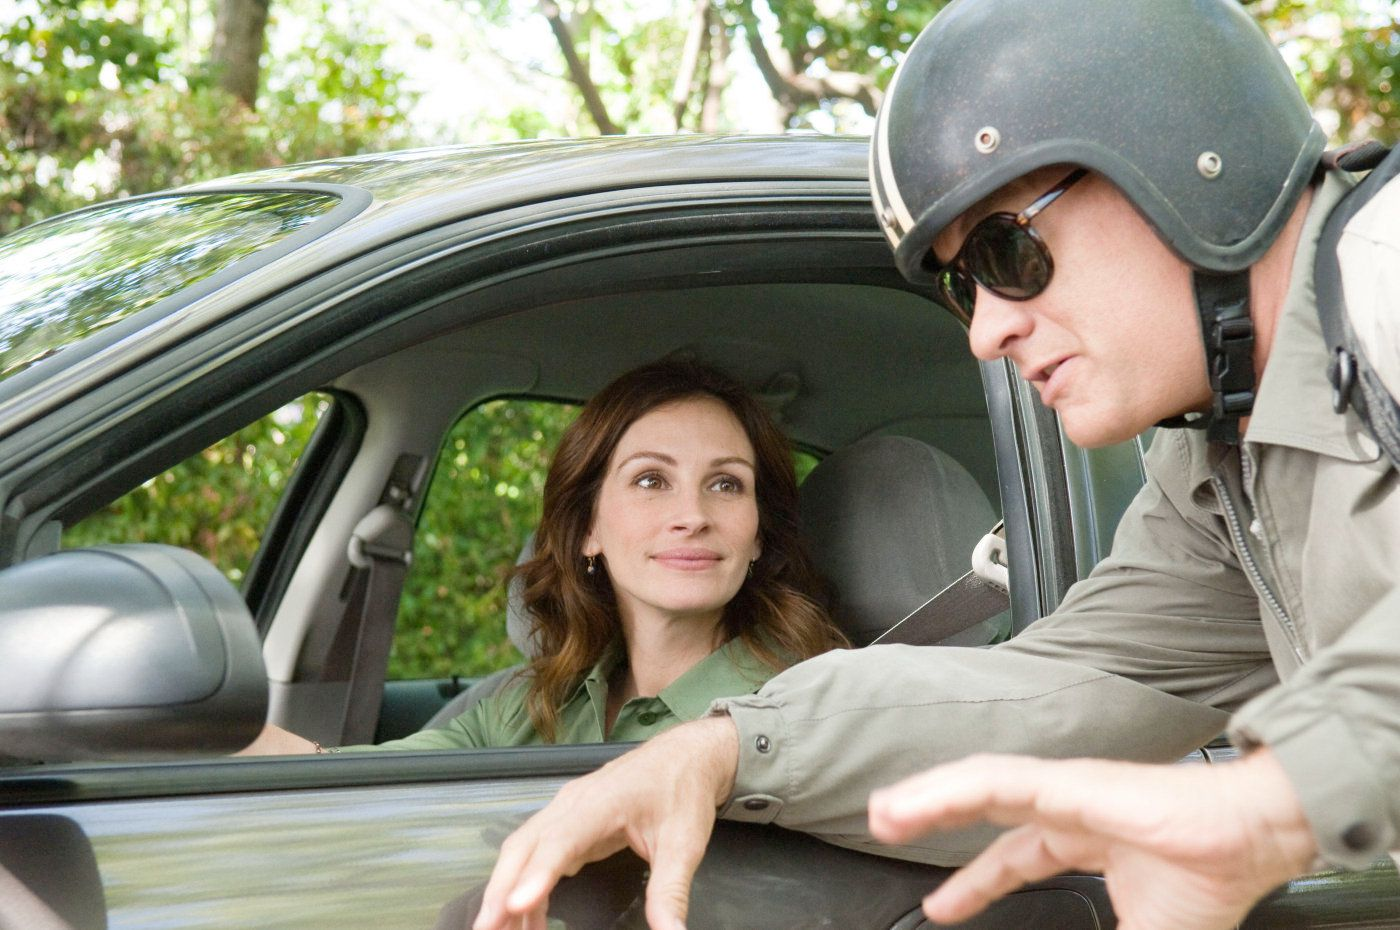 An image from Larry Crowne